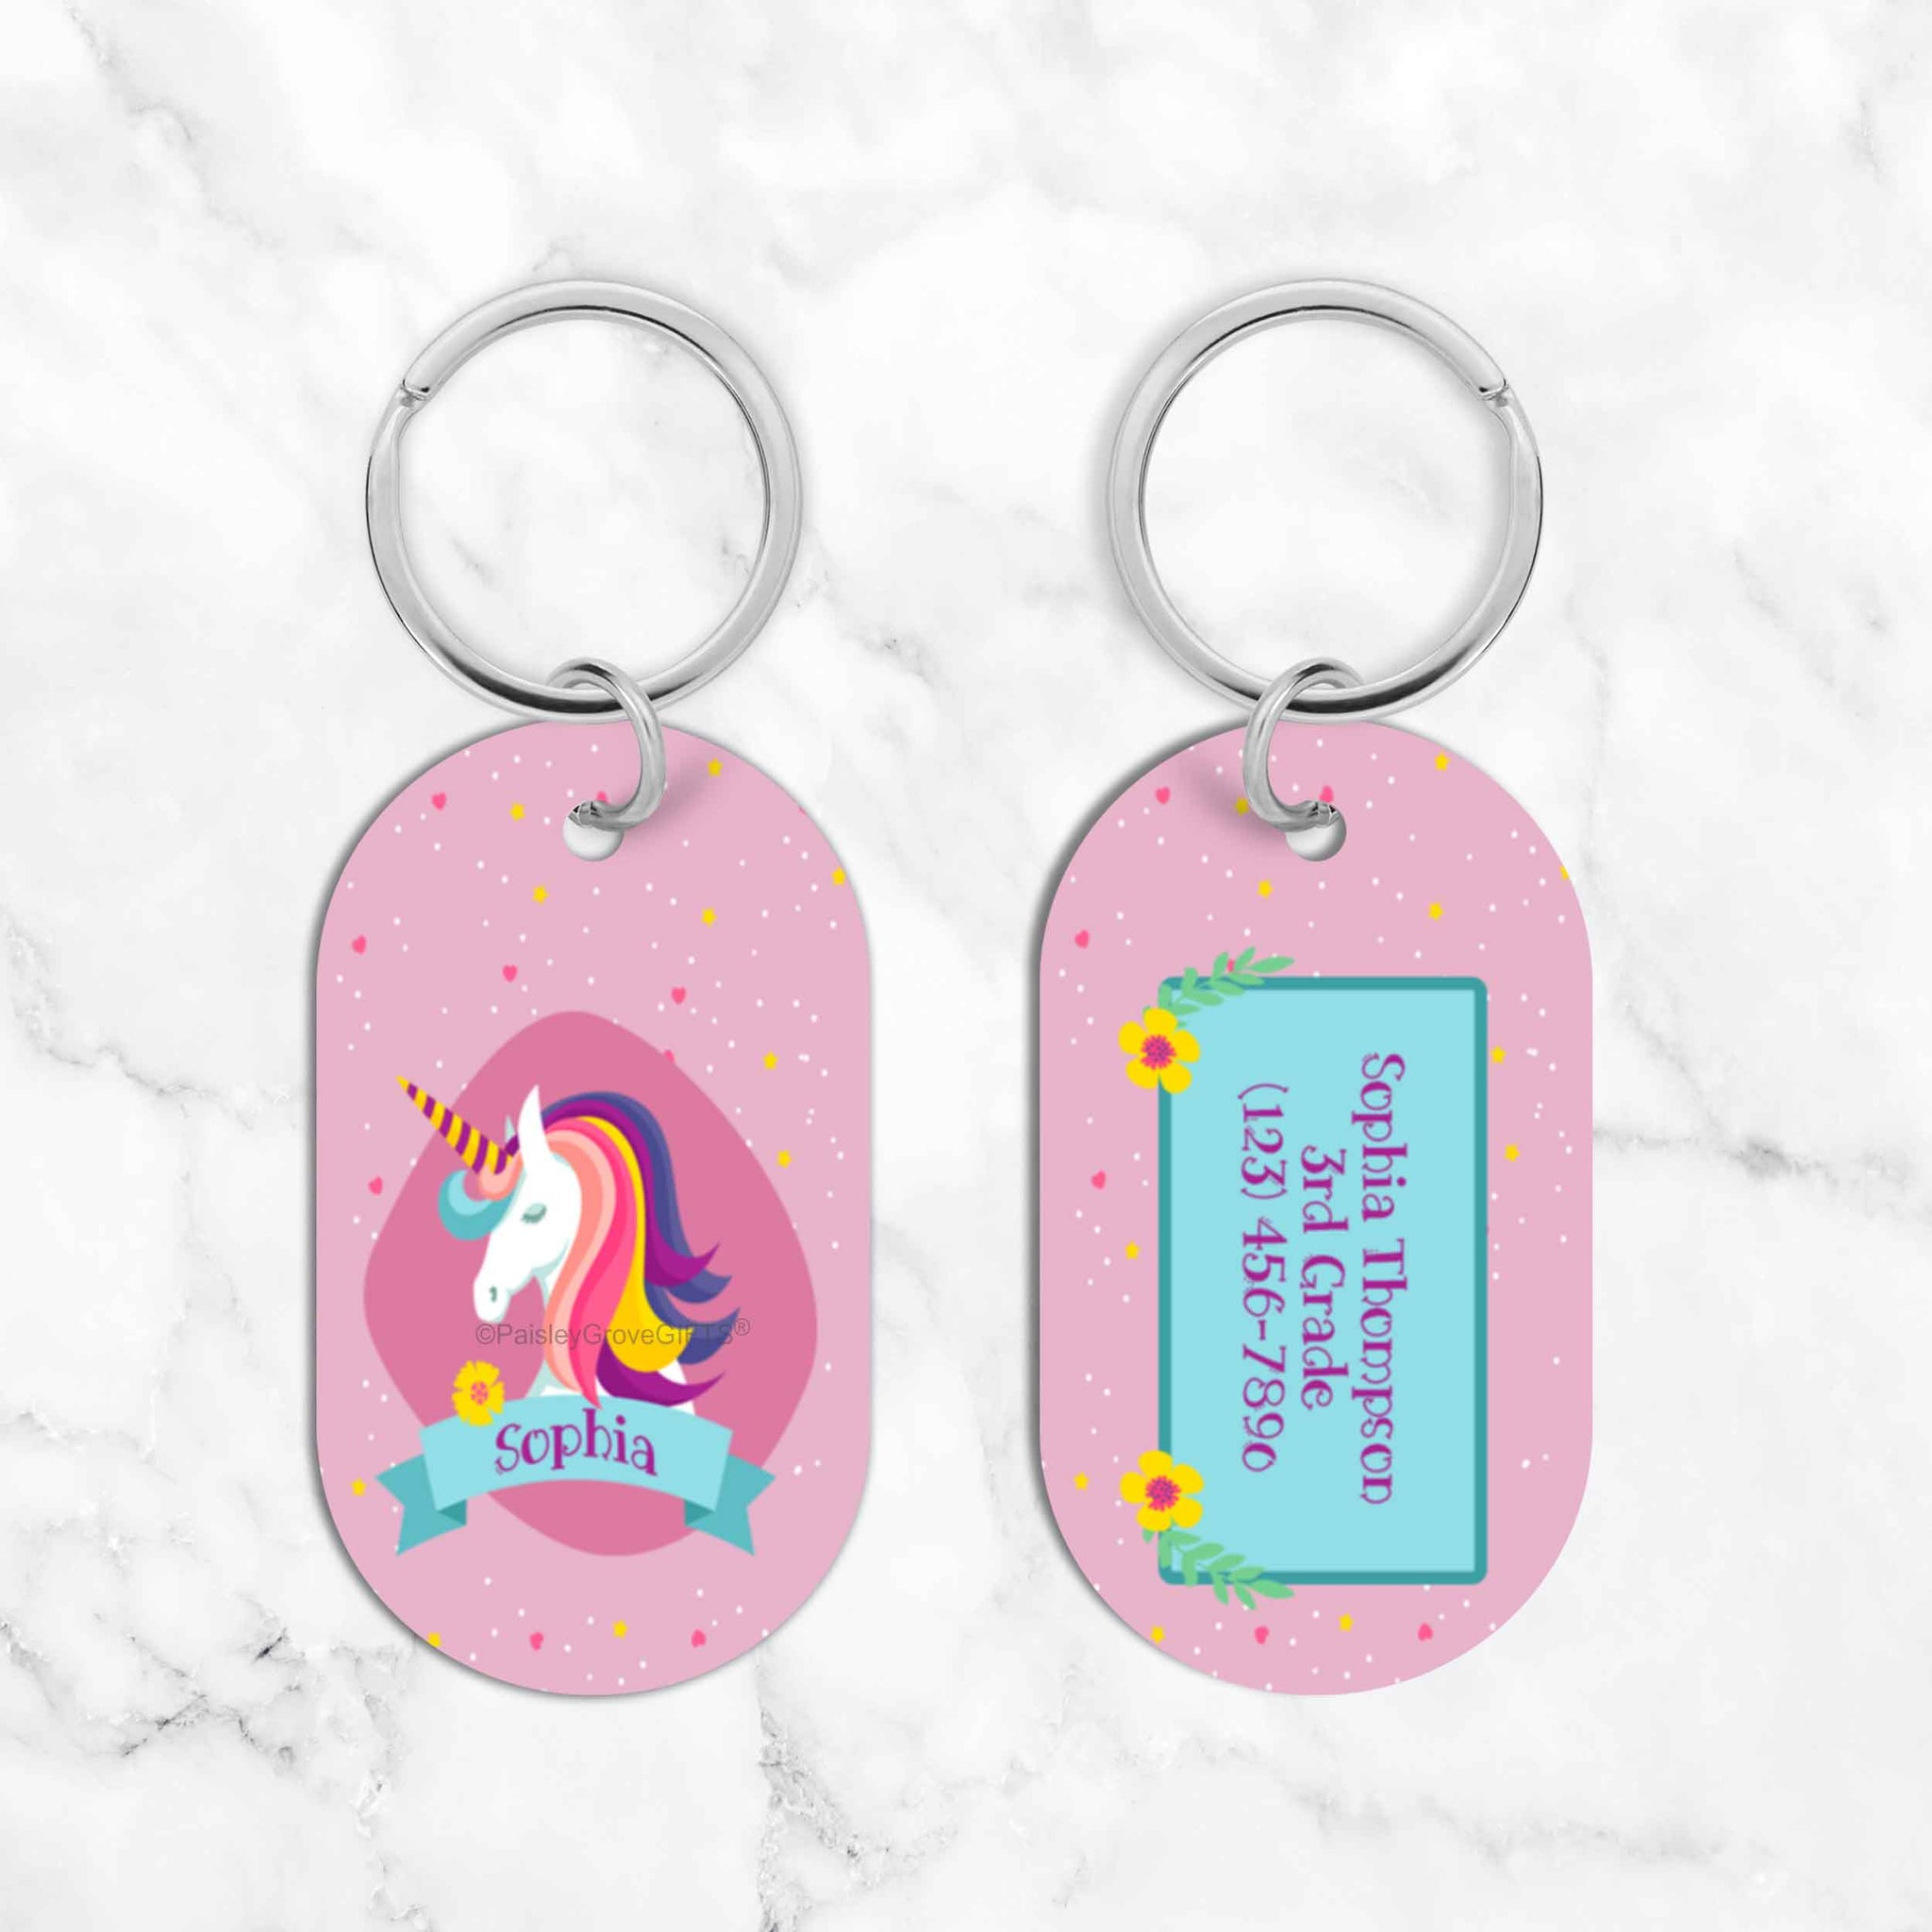 CopyrightPaisleyGroveGIFTS S070d1 Unique Kids Luggage Tags and Bag Tags for Backpacks Lunch boxes Sports and Dance Bags